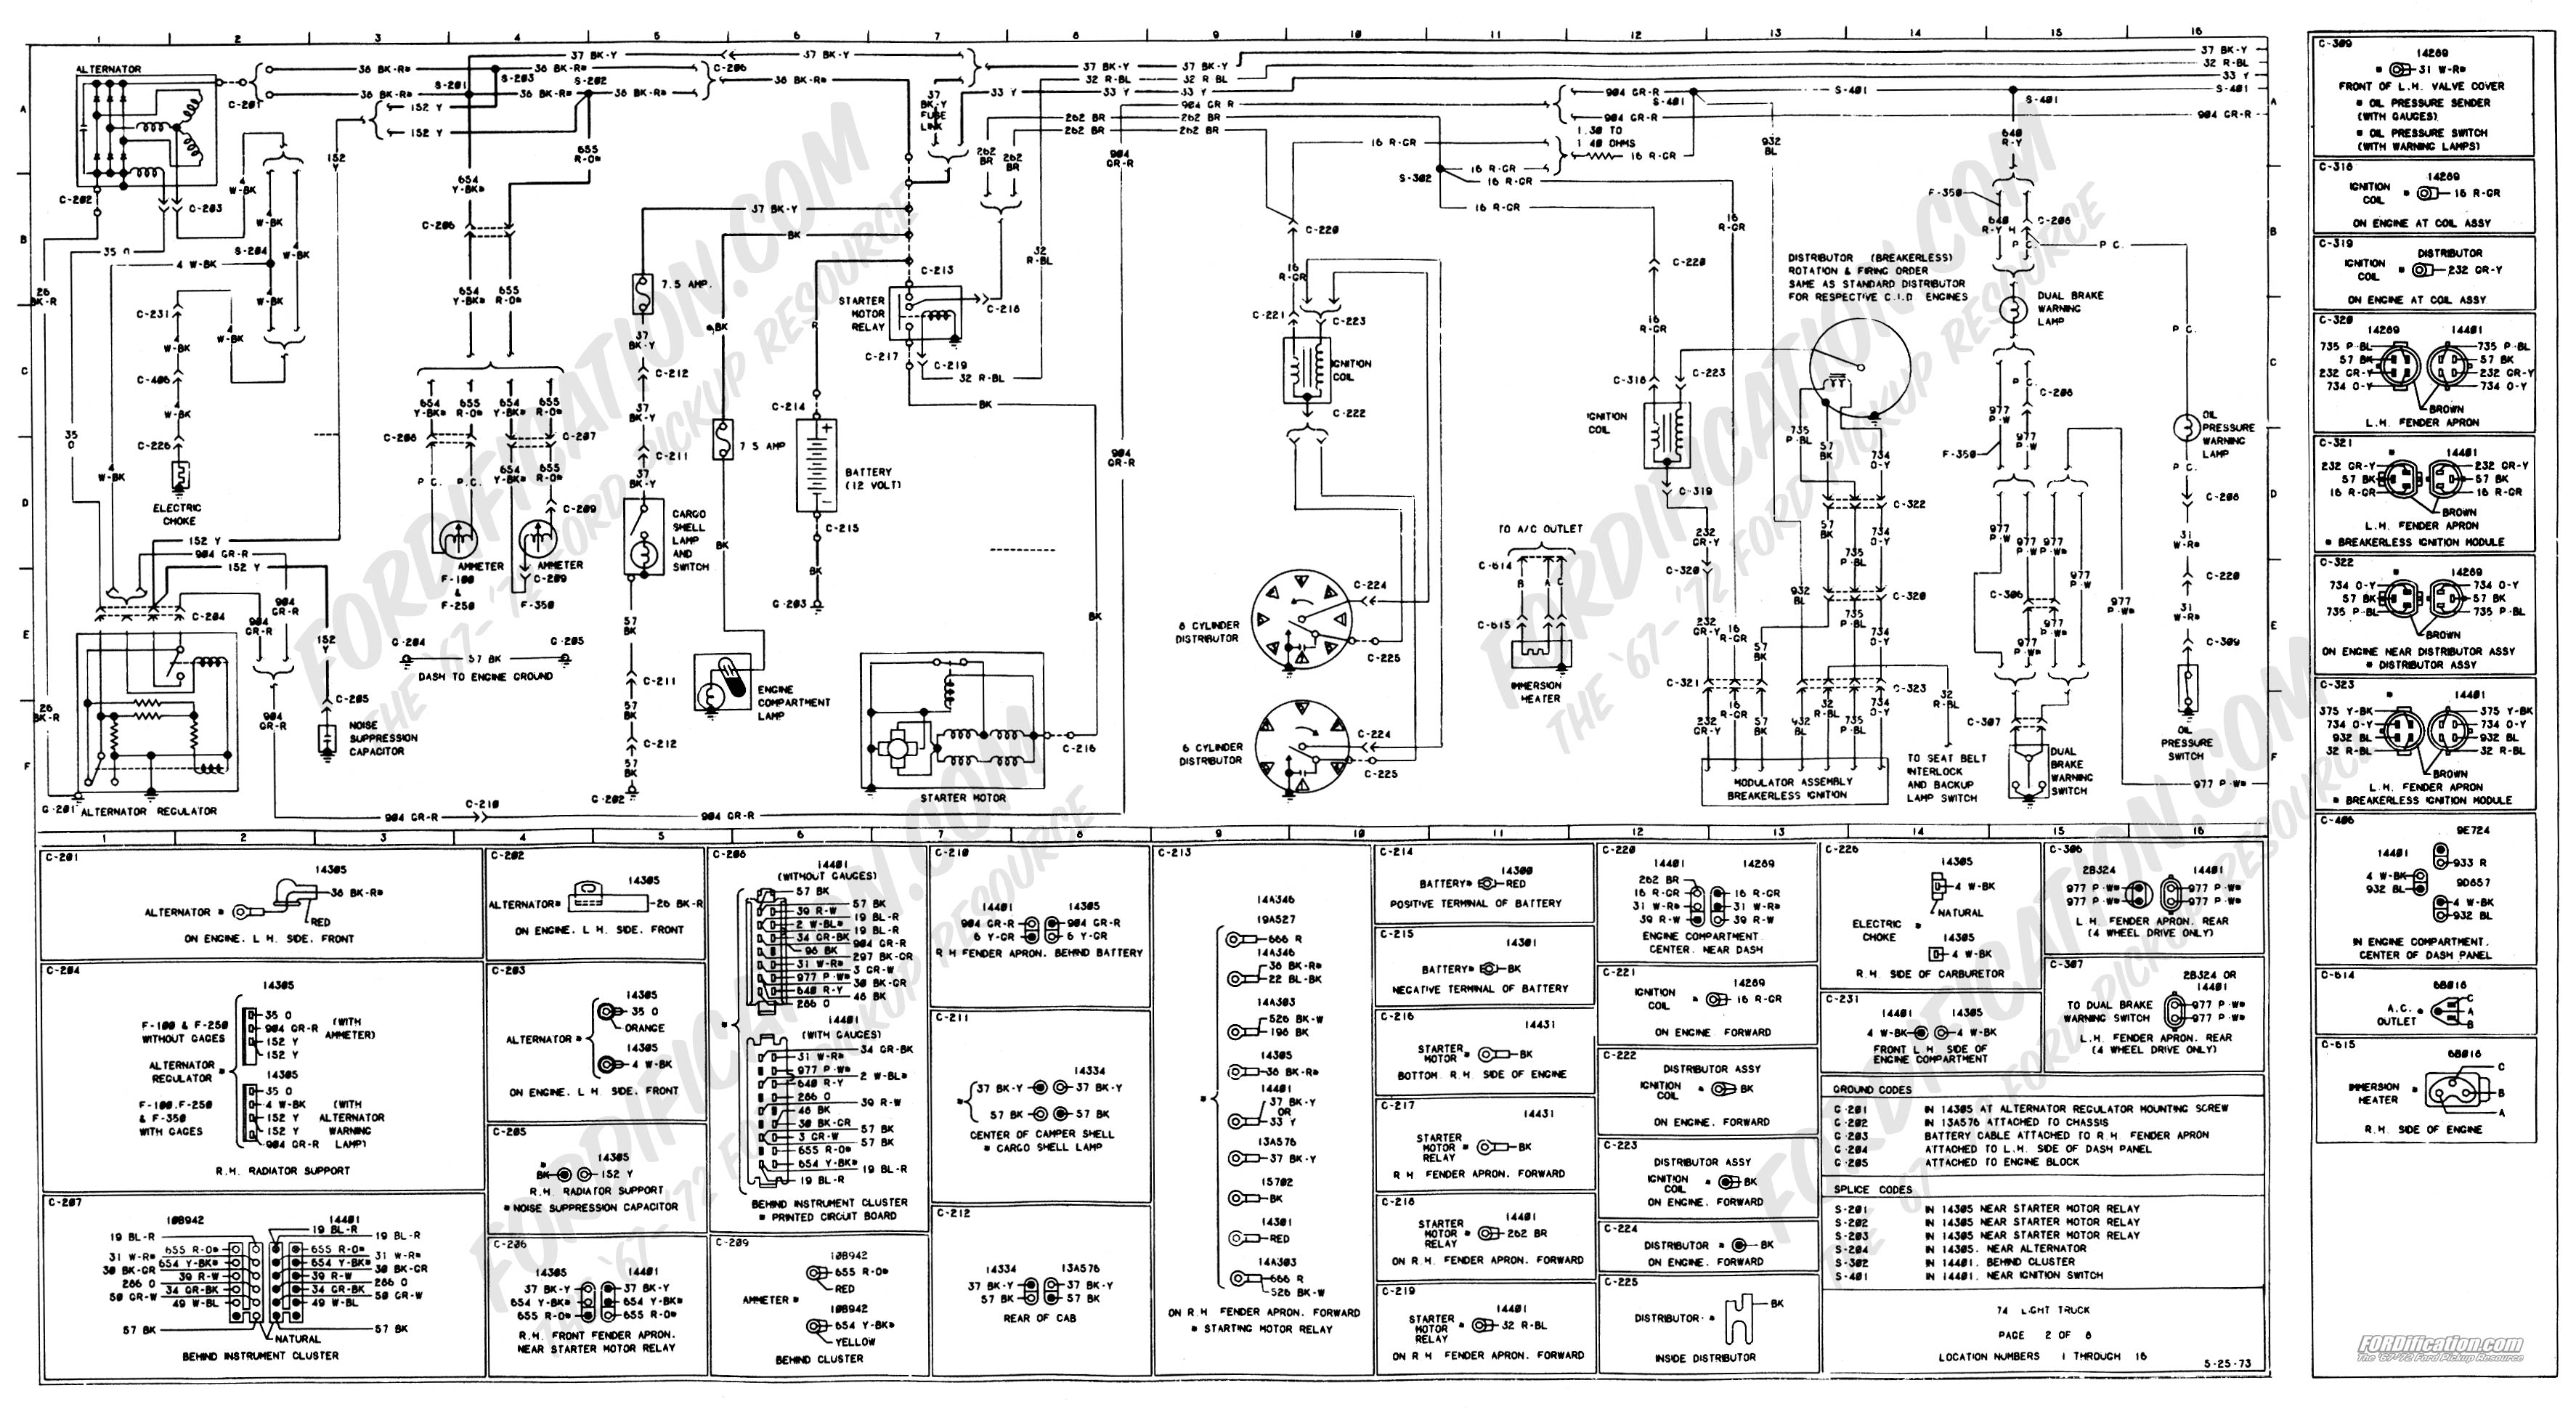 1979 Ford F 150 Wiring Schematic Great Installation Of 7 Way Trailer Diagram 1973 Truck Diagrams Schematics Fordification Net Rh Ignition Switch Harness